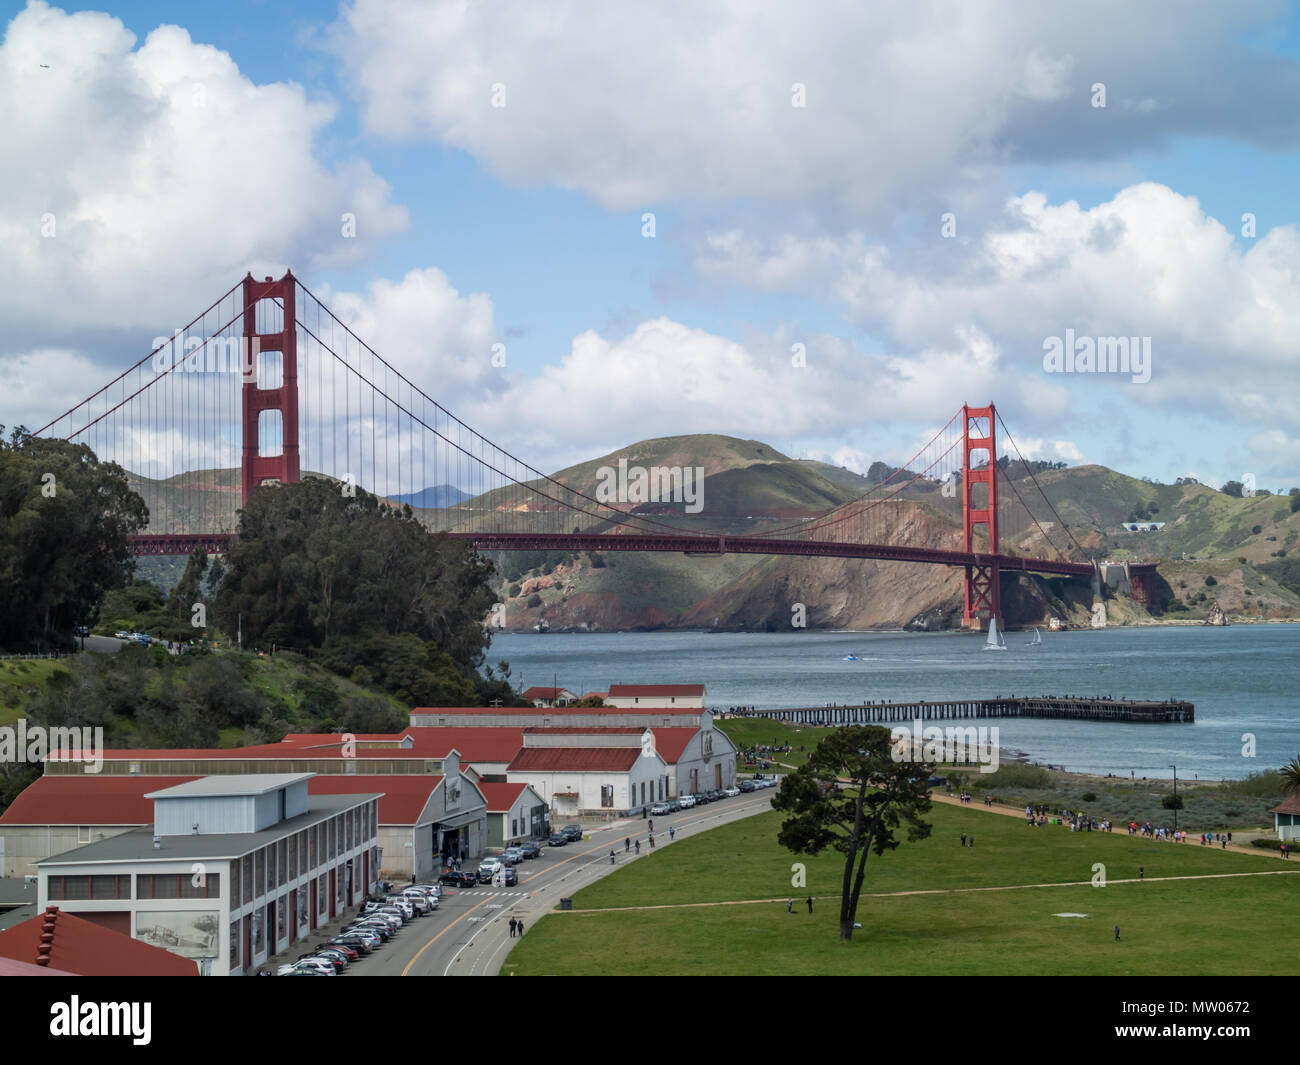 an approach shot of golden gate bridge with Mason street in the foreground and Greater Farallones Visitor Center - Stock Image